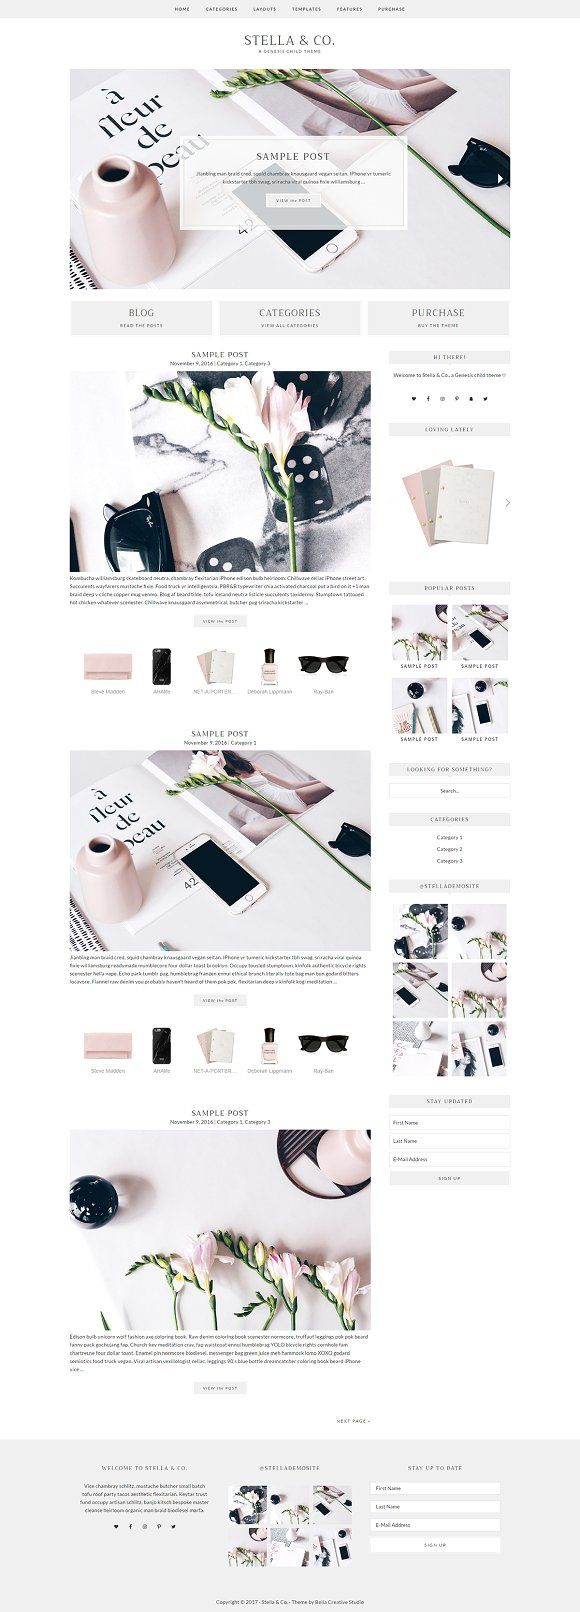 Stella & Co. - WordPress Theme by Bella Creative Studio on @creativemarket